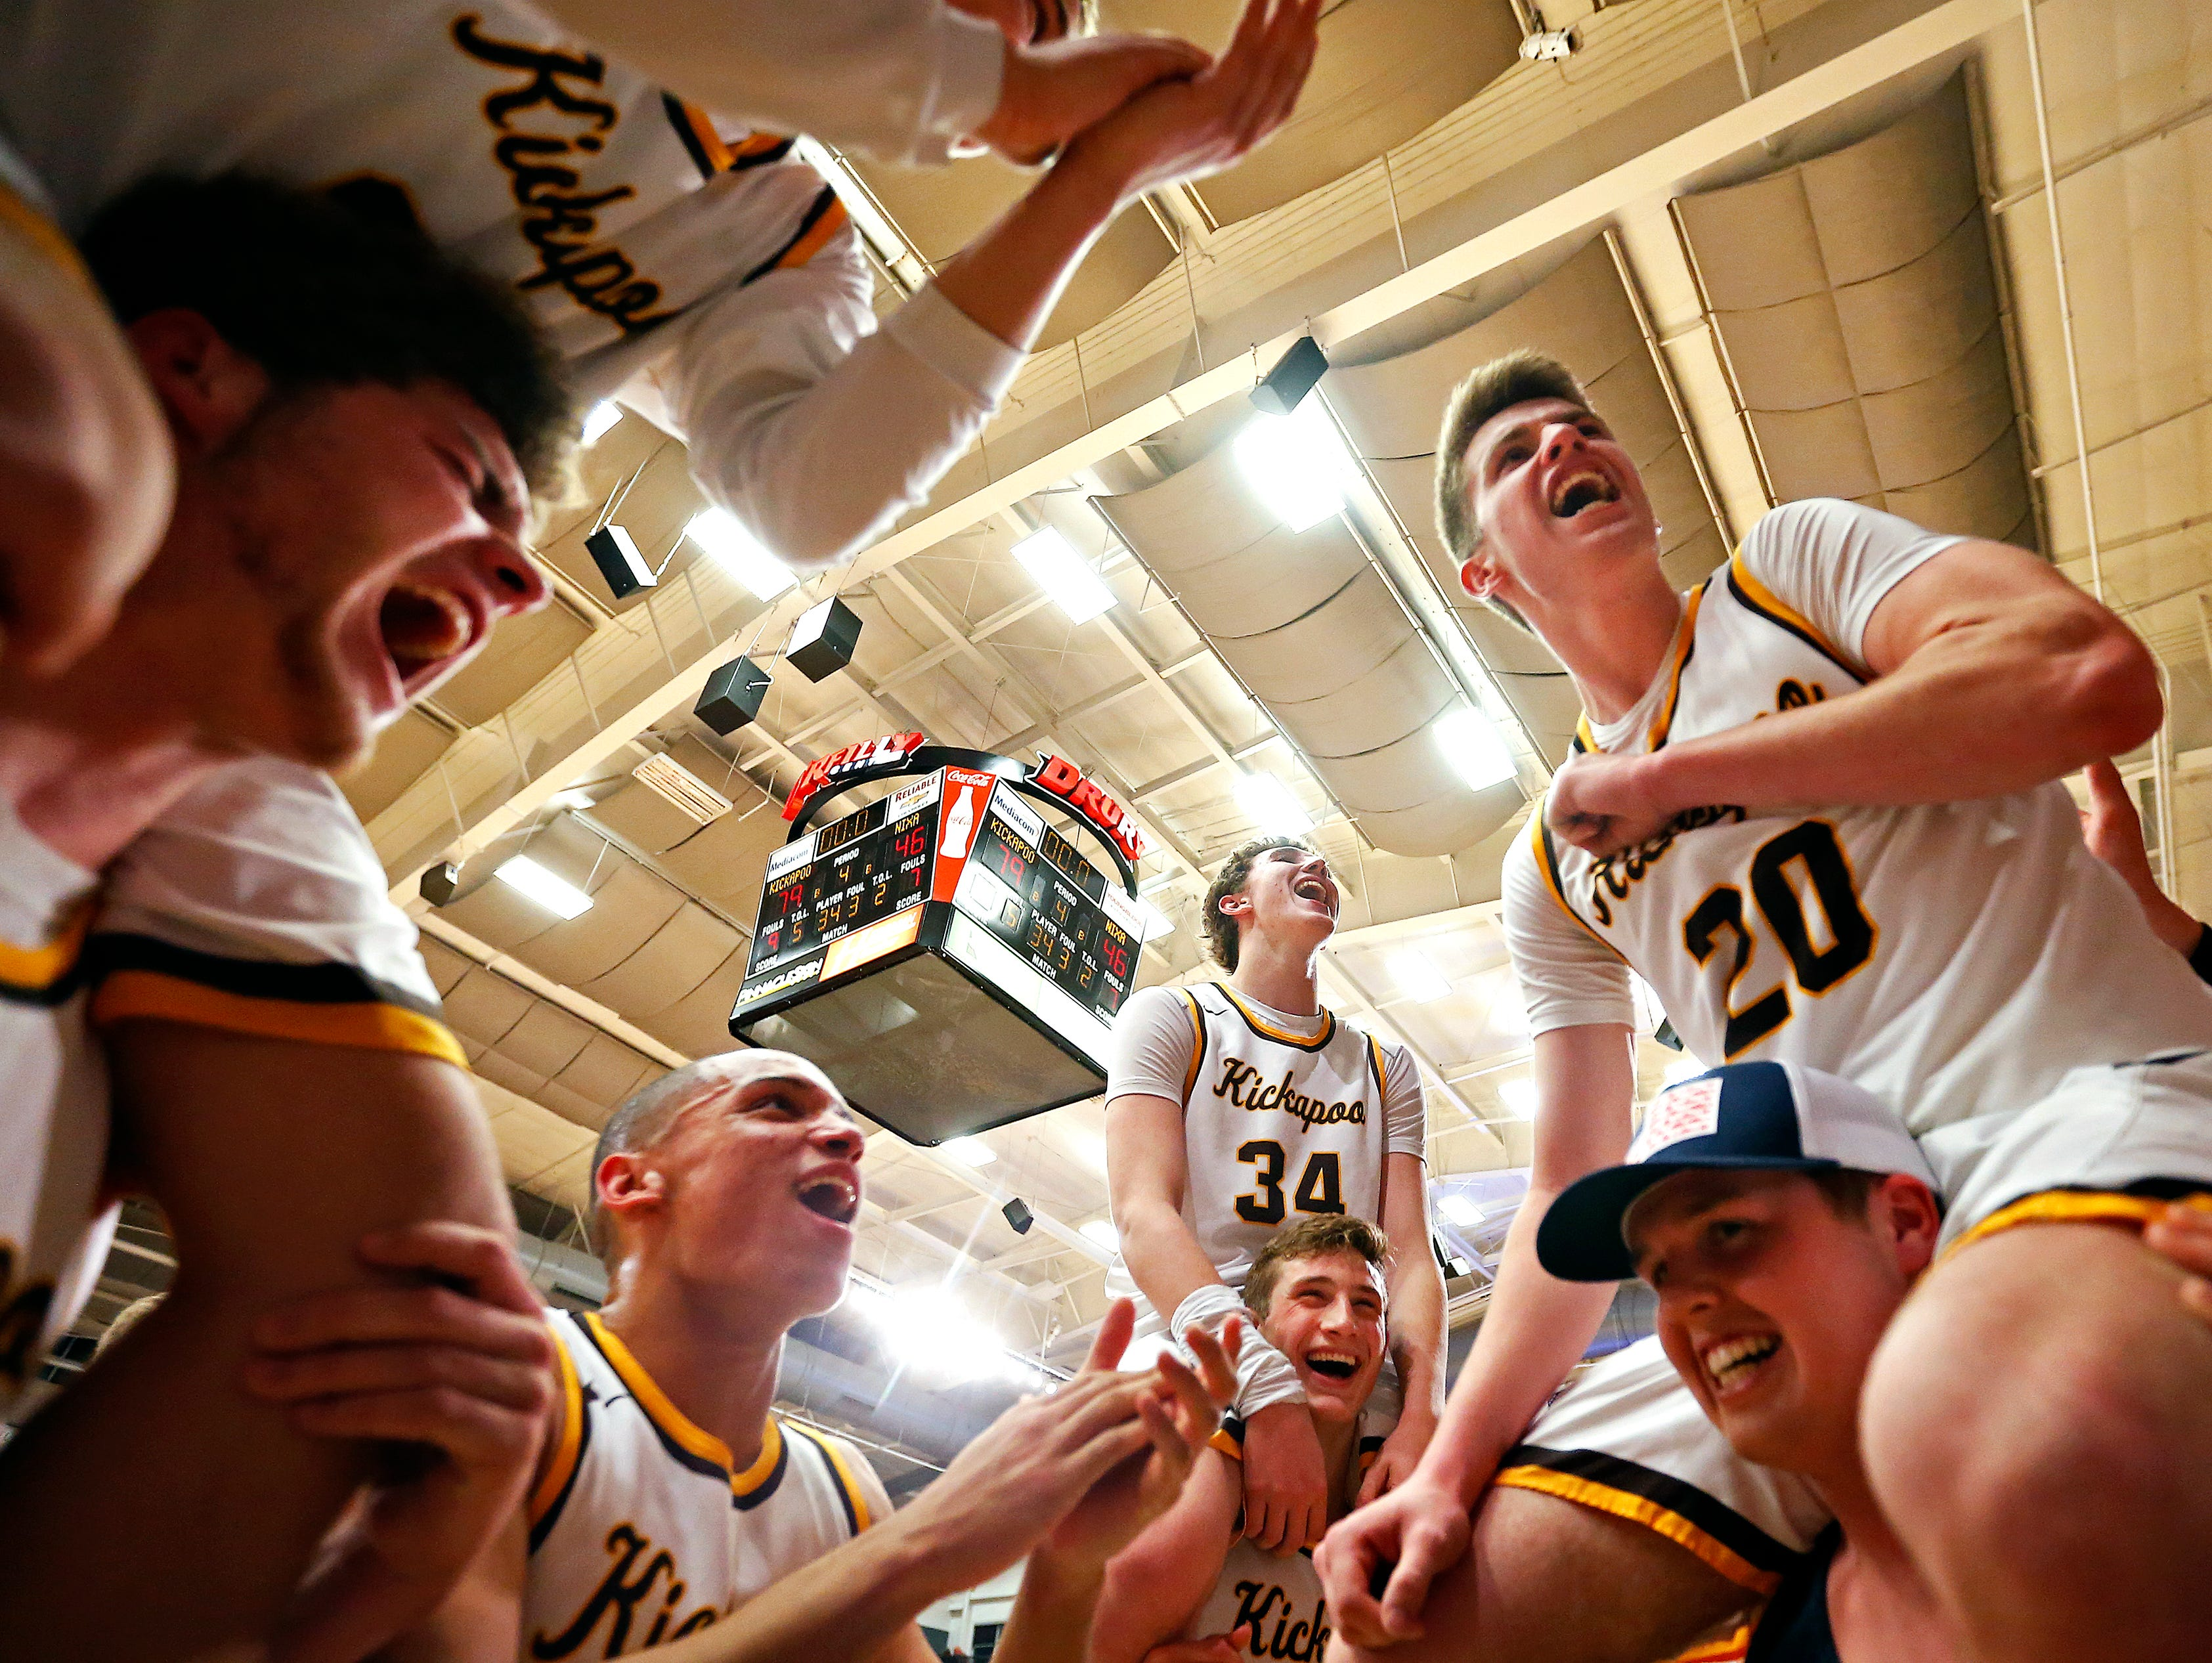 Kickapoo Chiefs players celebrate after the end of the MSHSAA Class 5 sectional playoff game between the Kickapoo High School Chiefs and the Nixa High School Eagles at the O'Reilly Family Event Center in Springfield, Mo. on March 8, 2017. The Kickapoo Chiefs won the game 79-46.